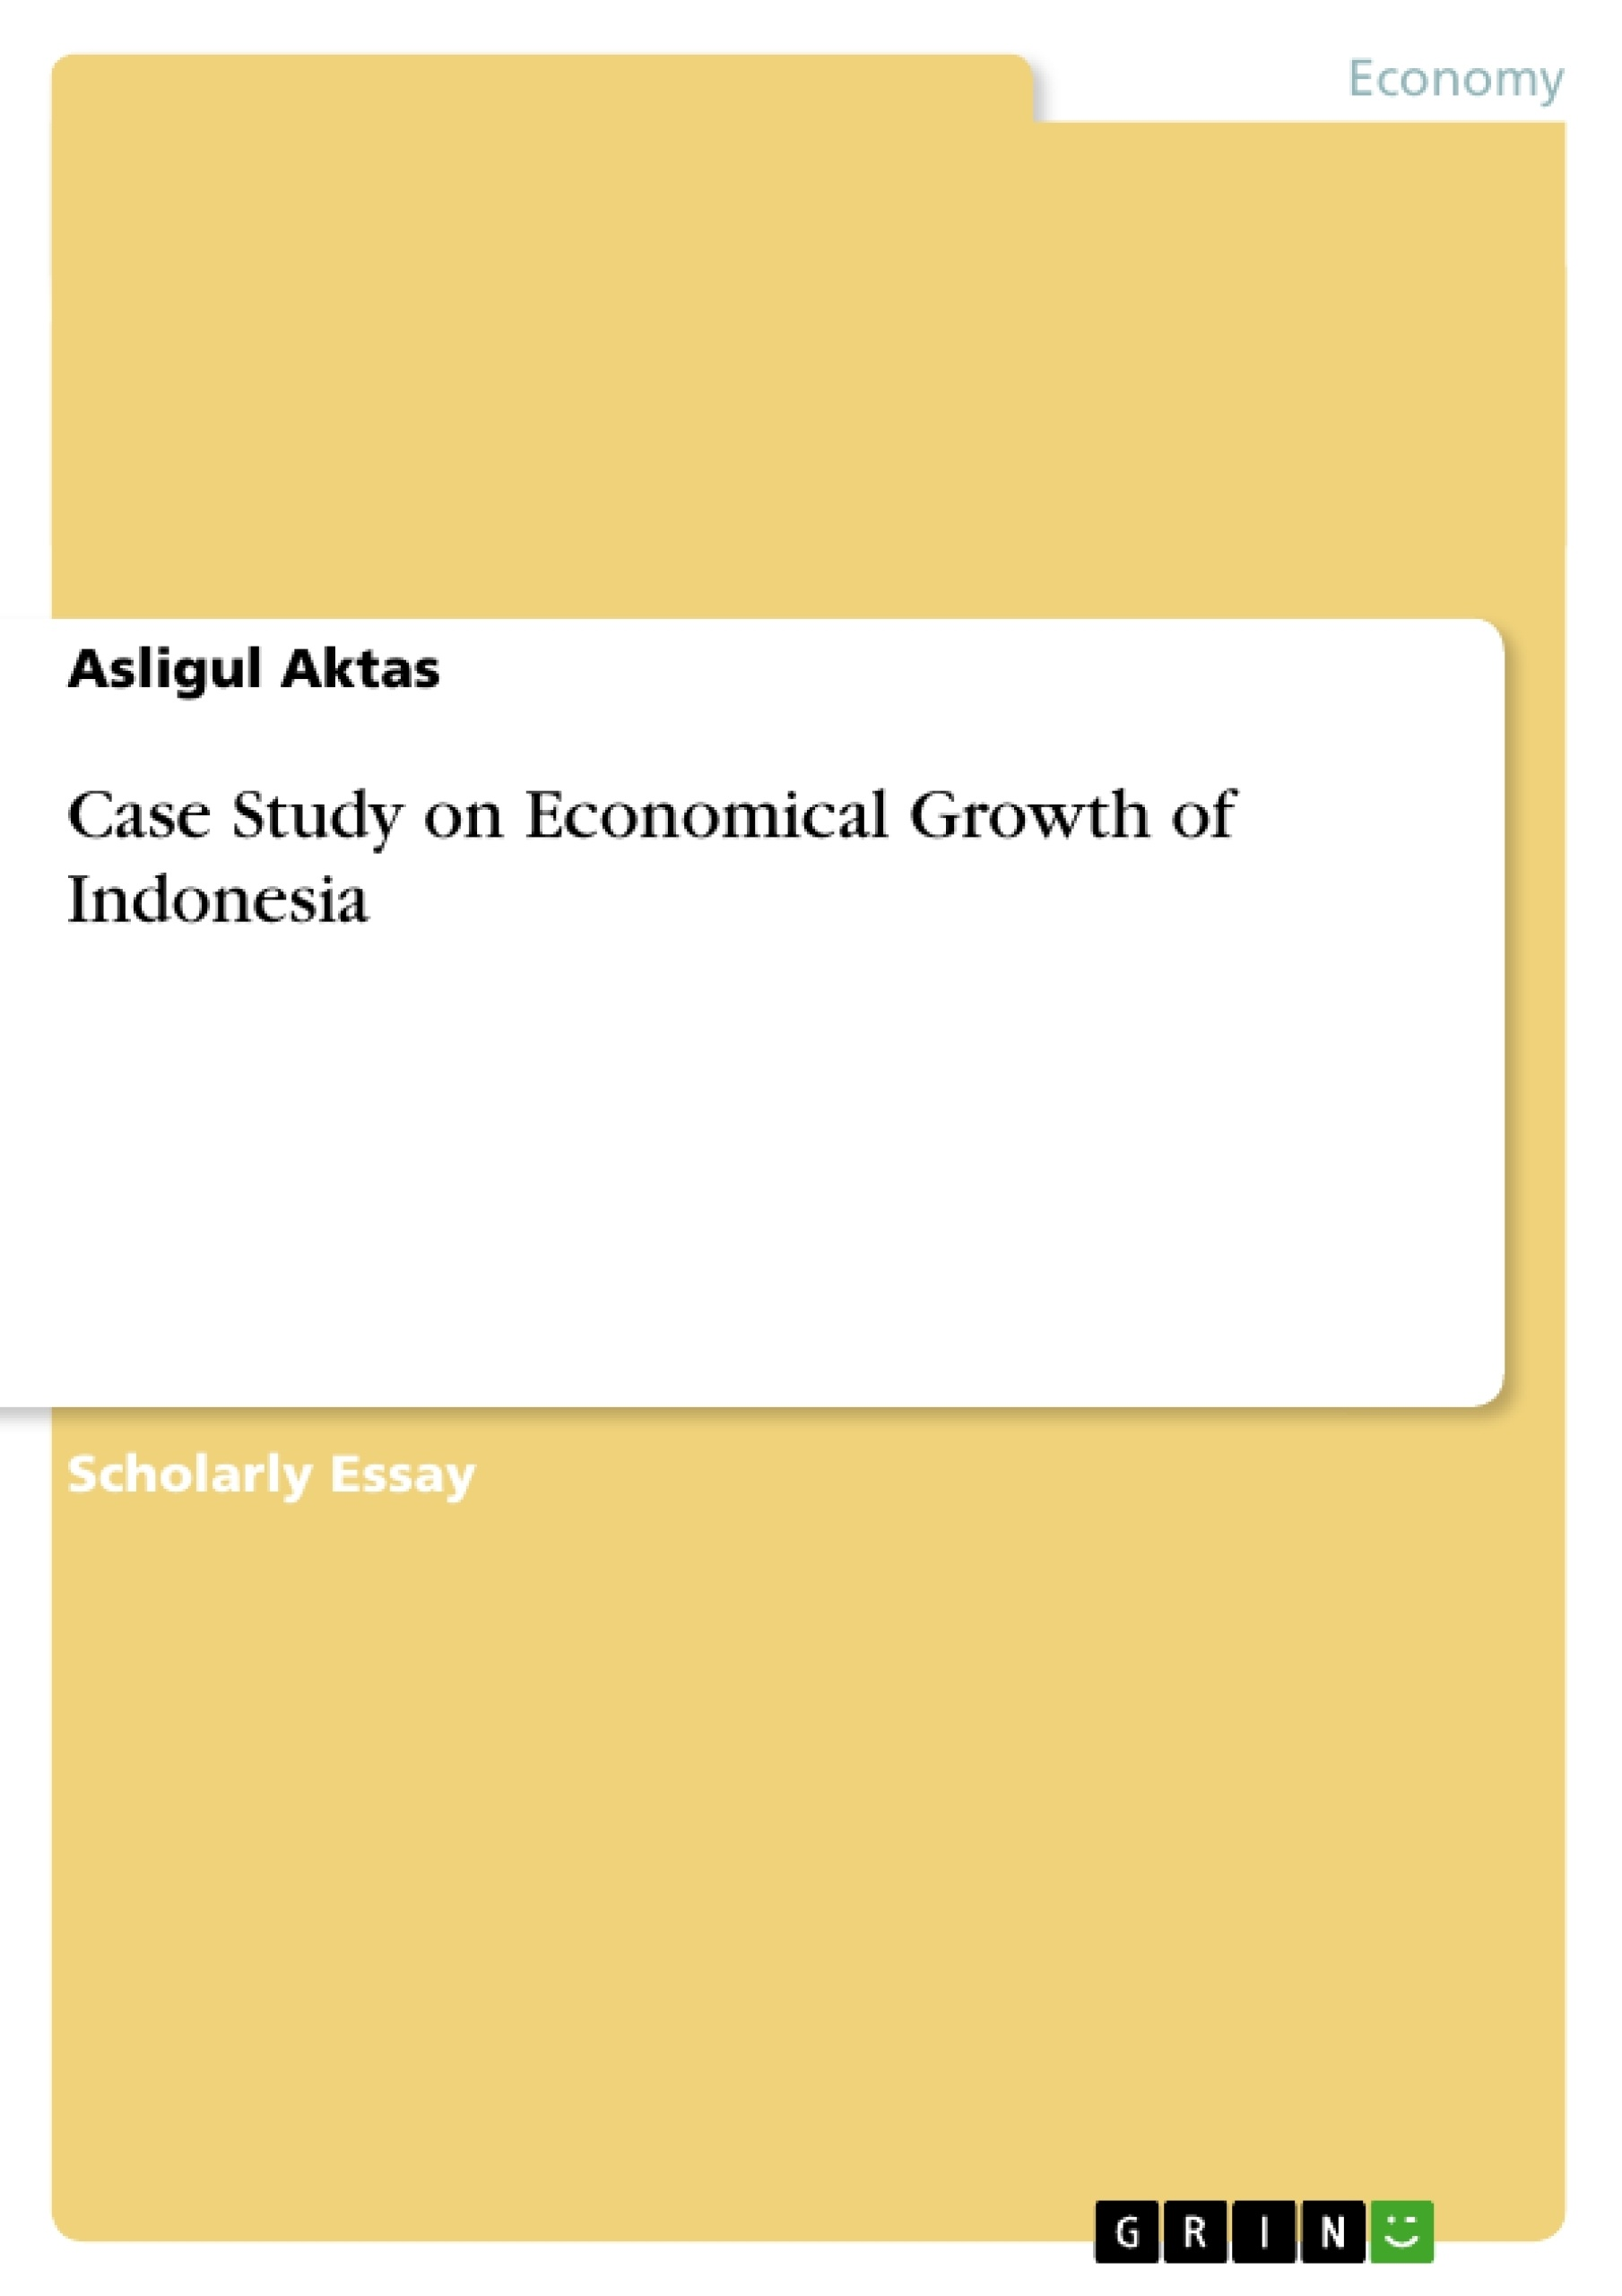 Title: Case Study on Economical Growth of Indonesia